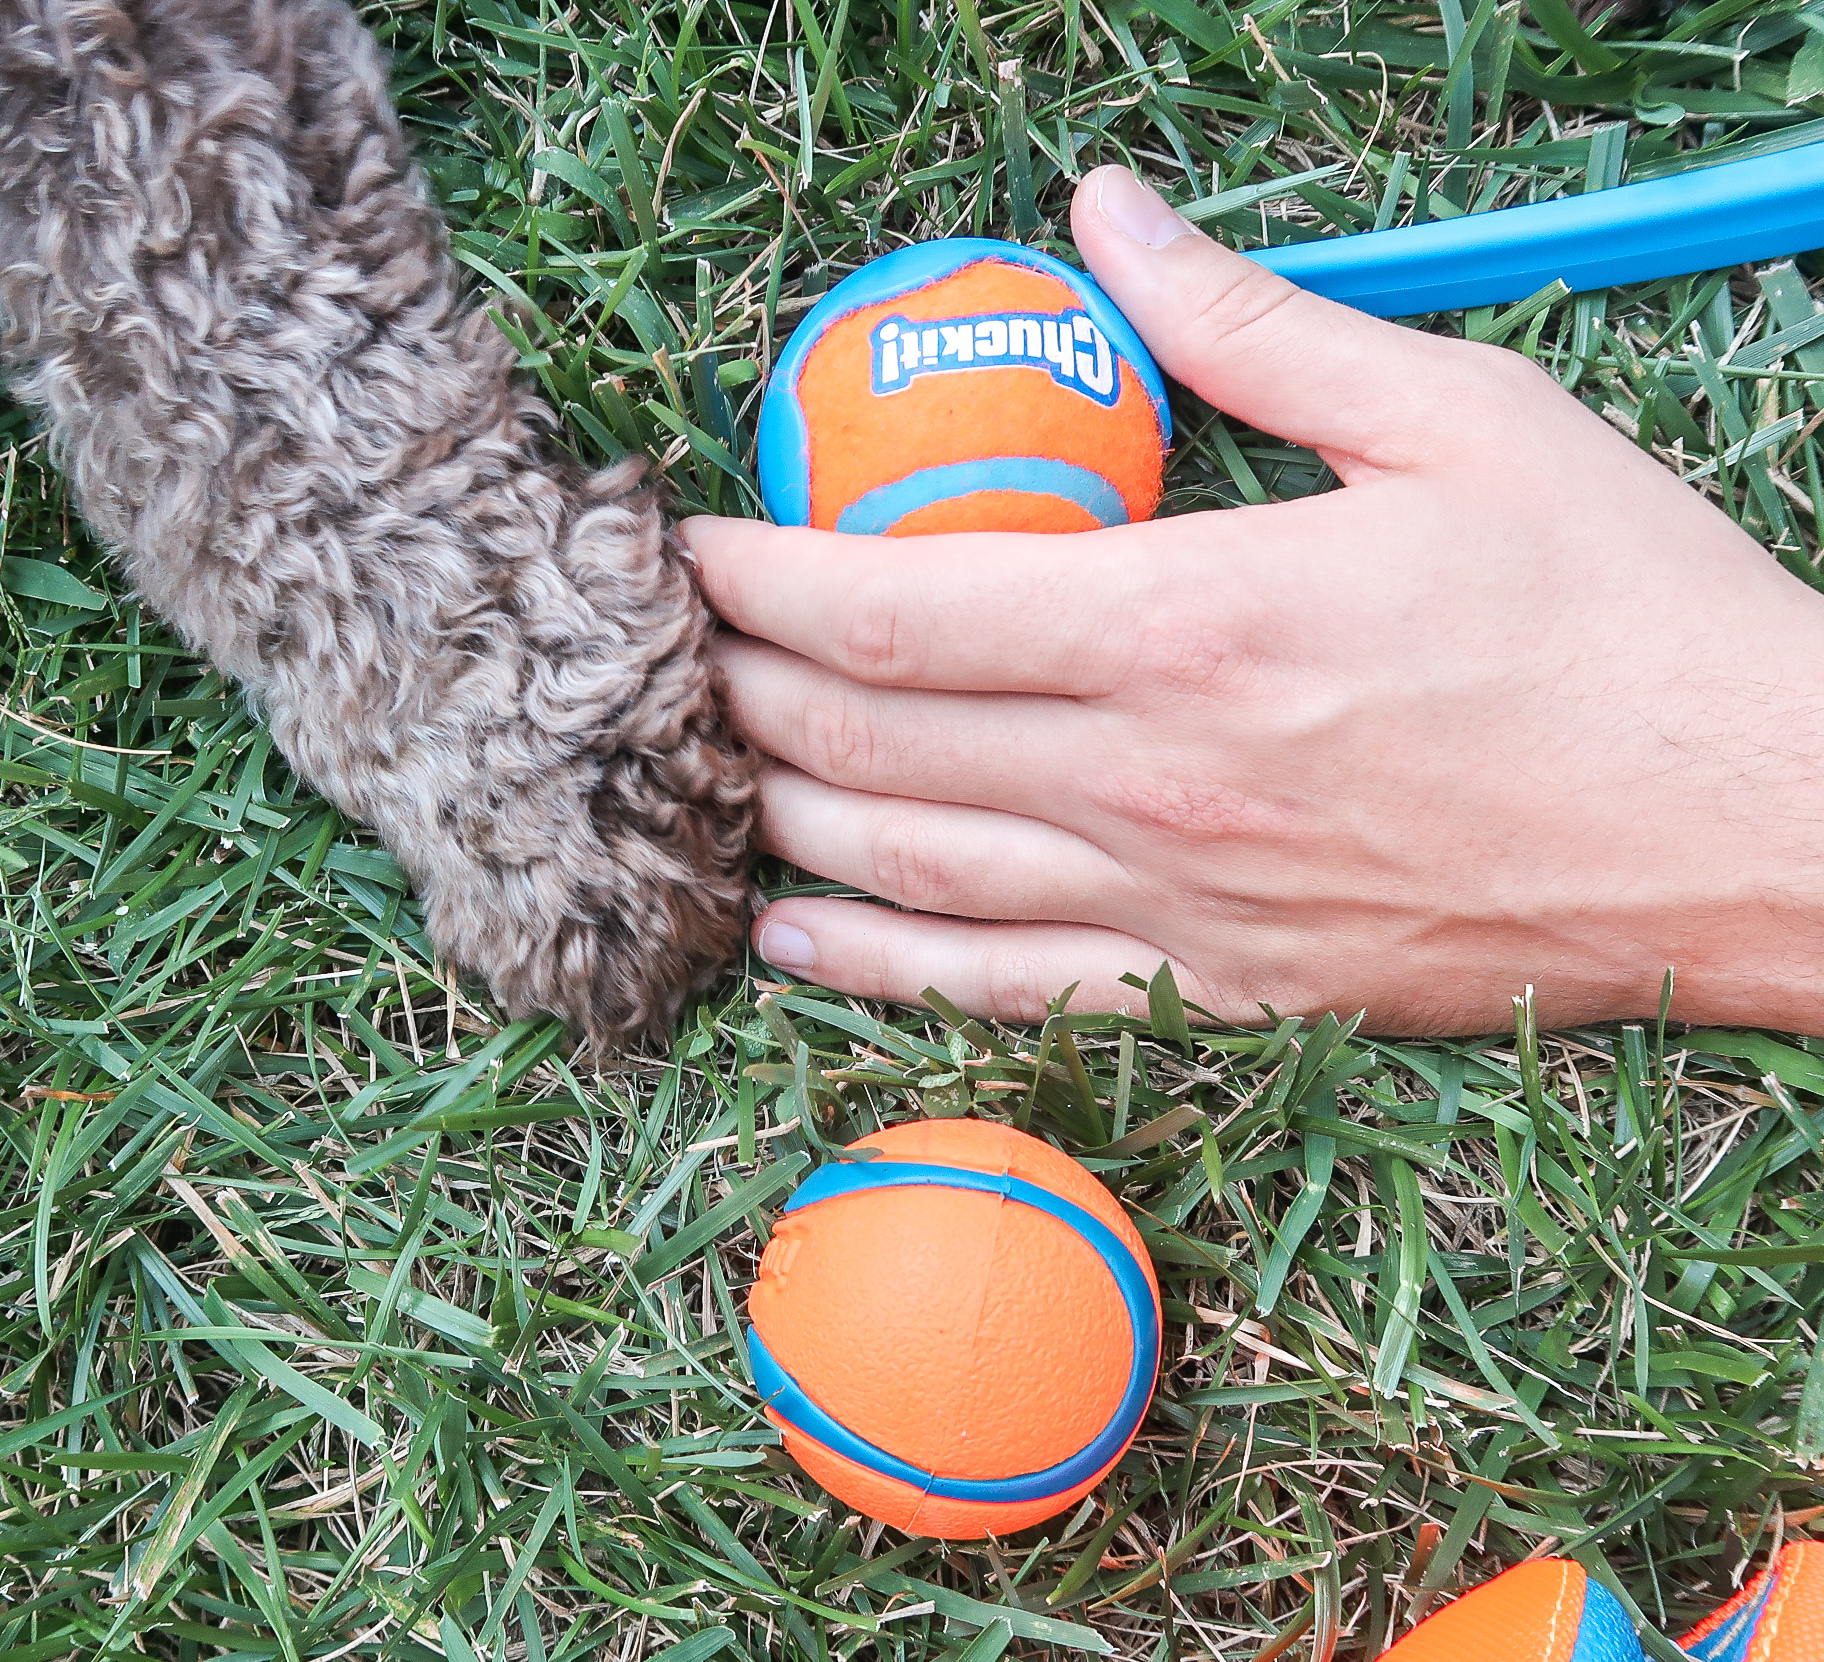 a-fetchin-way-for-your-dog-to-play-12.jpg